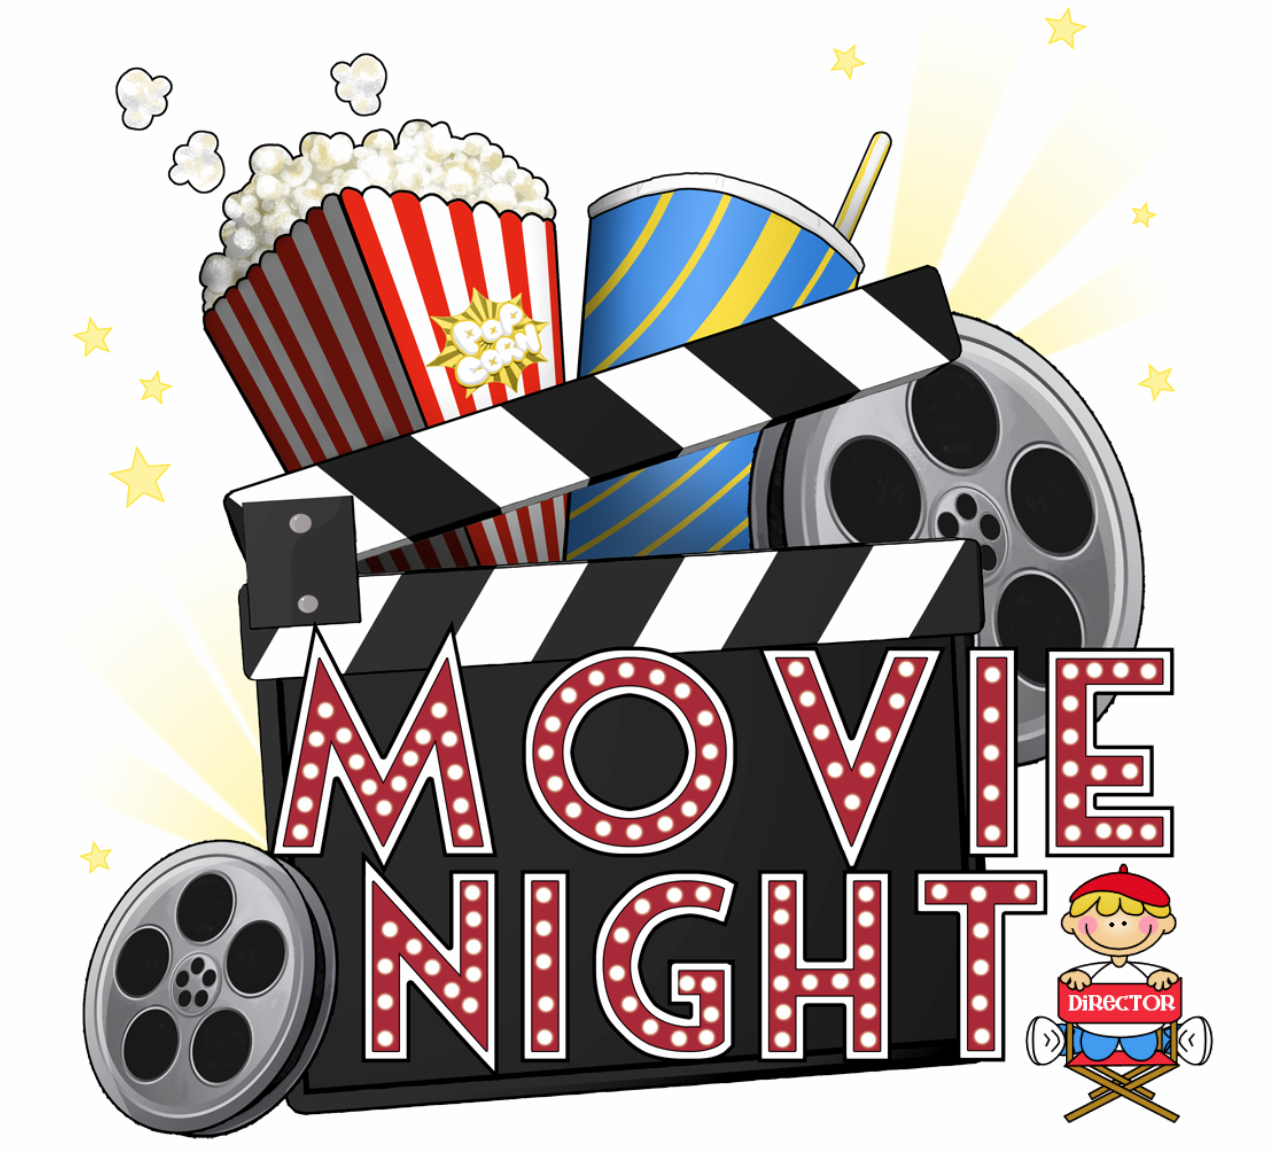 Free Movie Night Png, Download Free Clip Art, Free Clip Art.